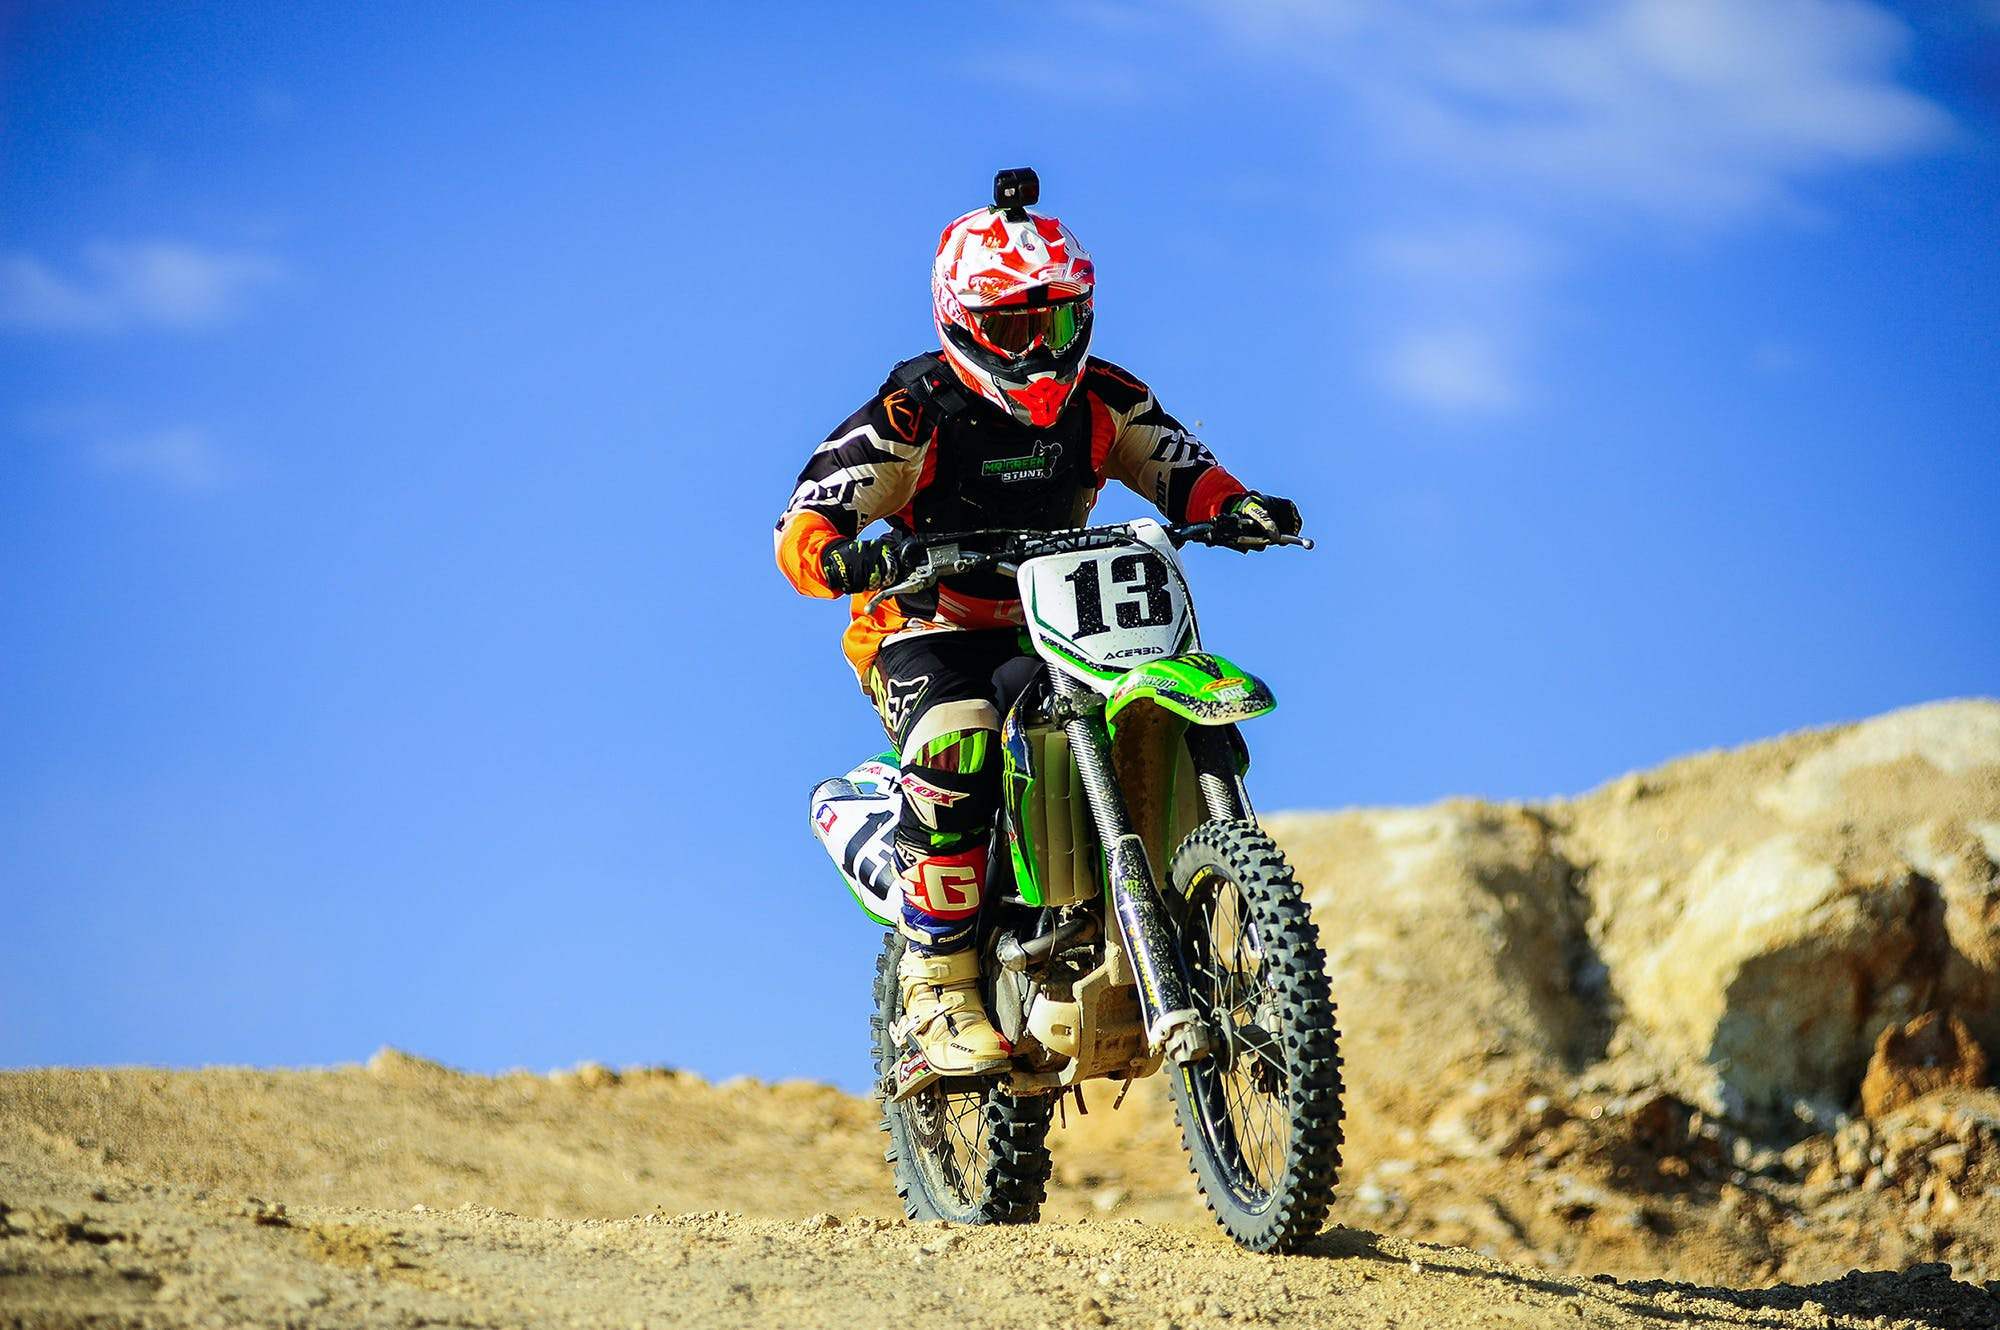 Person Riding Motocross Dirt Bike